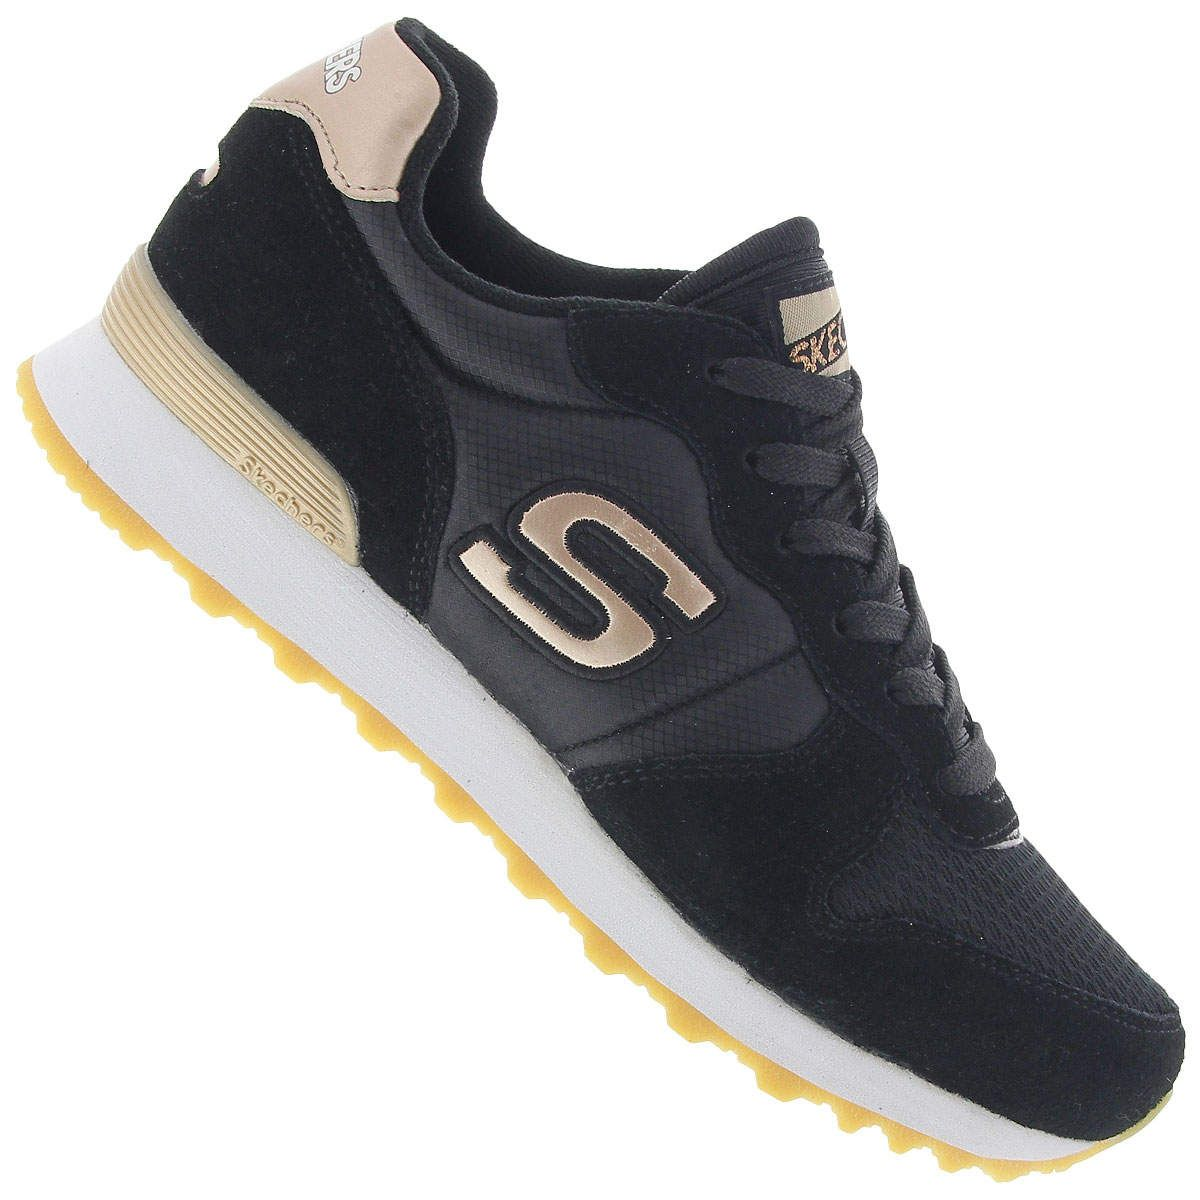 0022641c81 Tênis Skechers Retros OG 85 Golden Girl